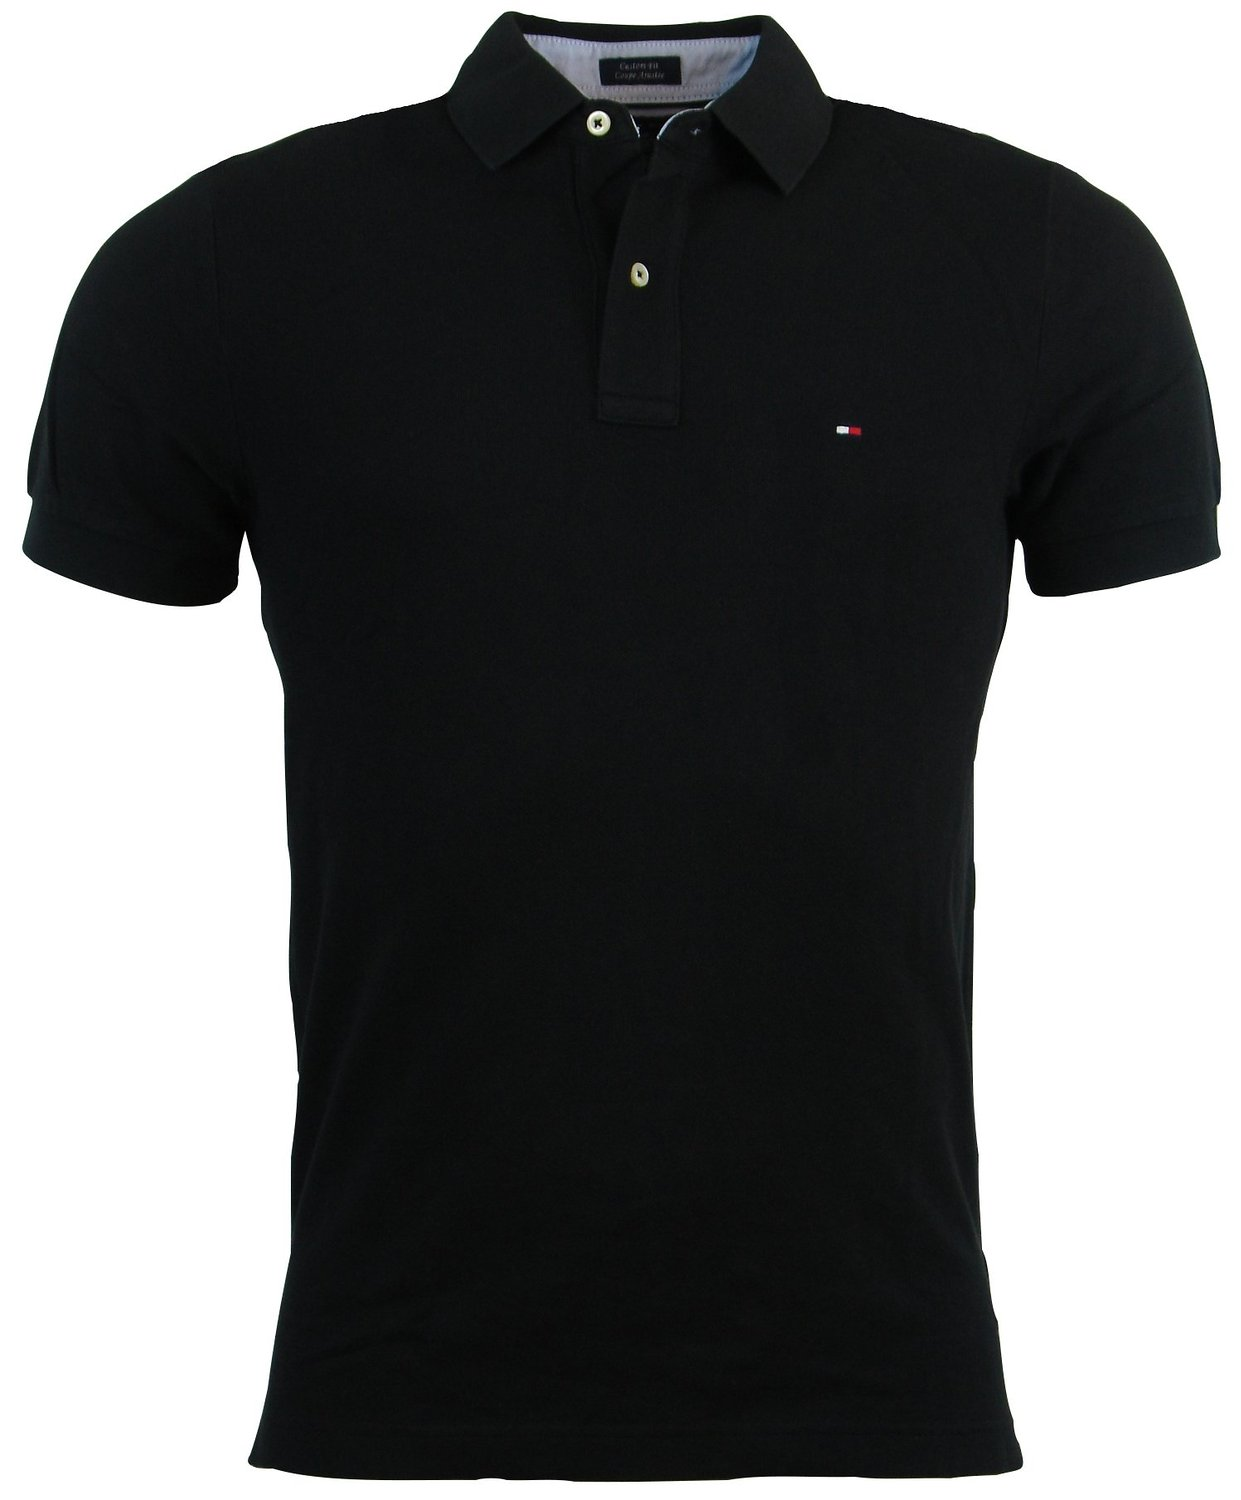 Tommy Hilfiger Mens Custom Fit Solid Color Polo Shirt at Amazon Men's Clothing store